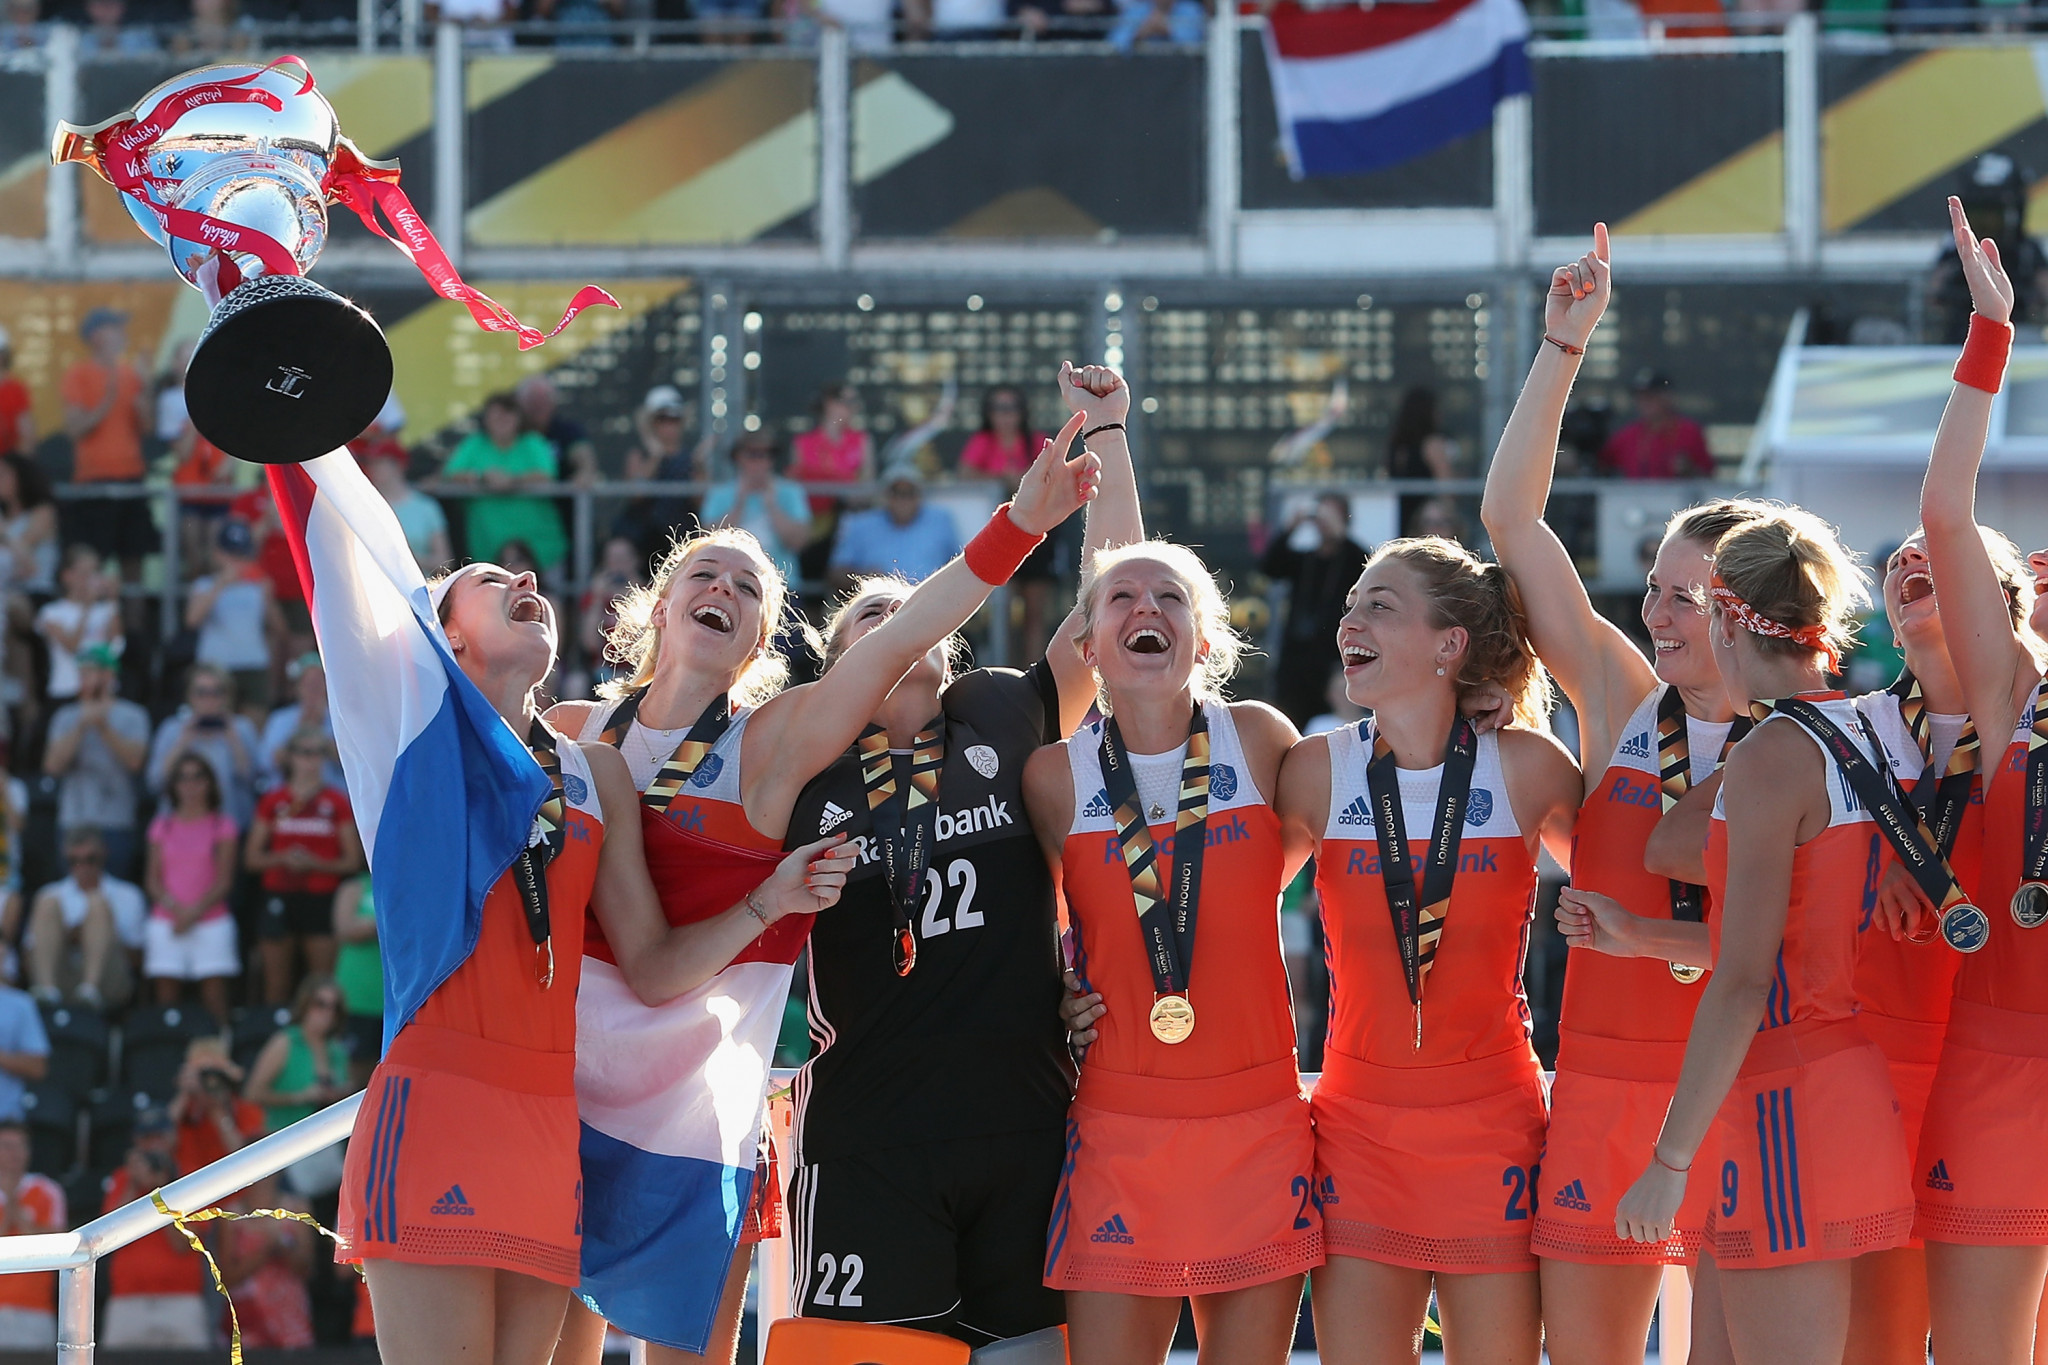 The Netherlands triumphed at the 2018 women's Hockey World Cup in England ©Getty Images